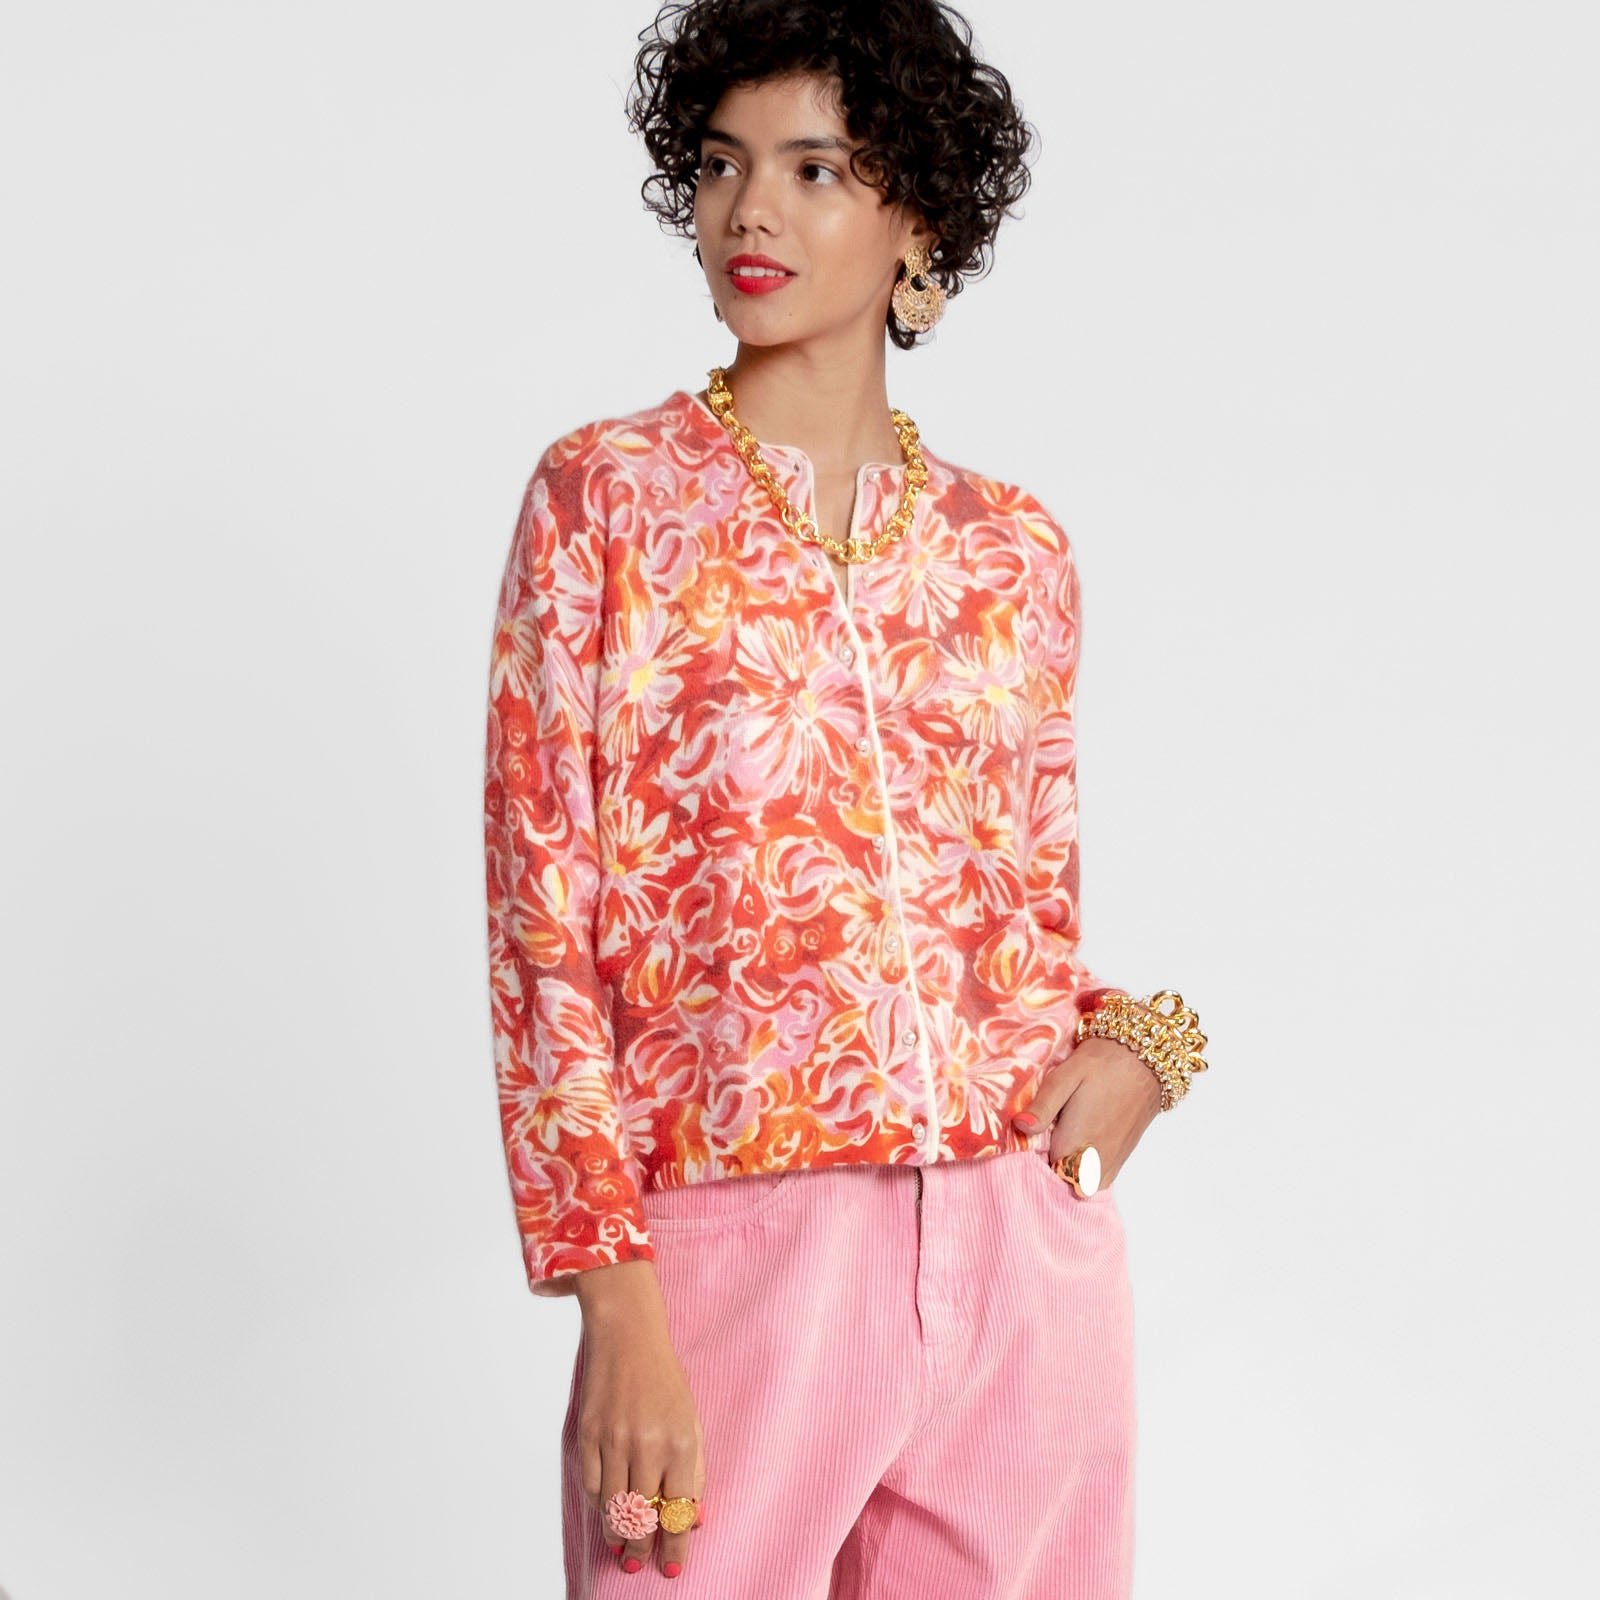 Darling Cardigan Wild Flower Burst Pink - Frances Valentine